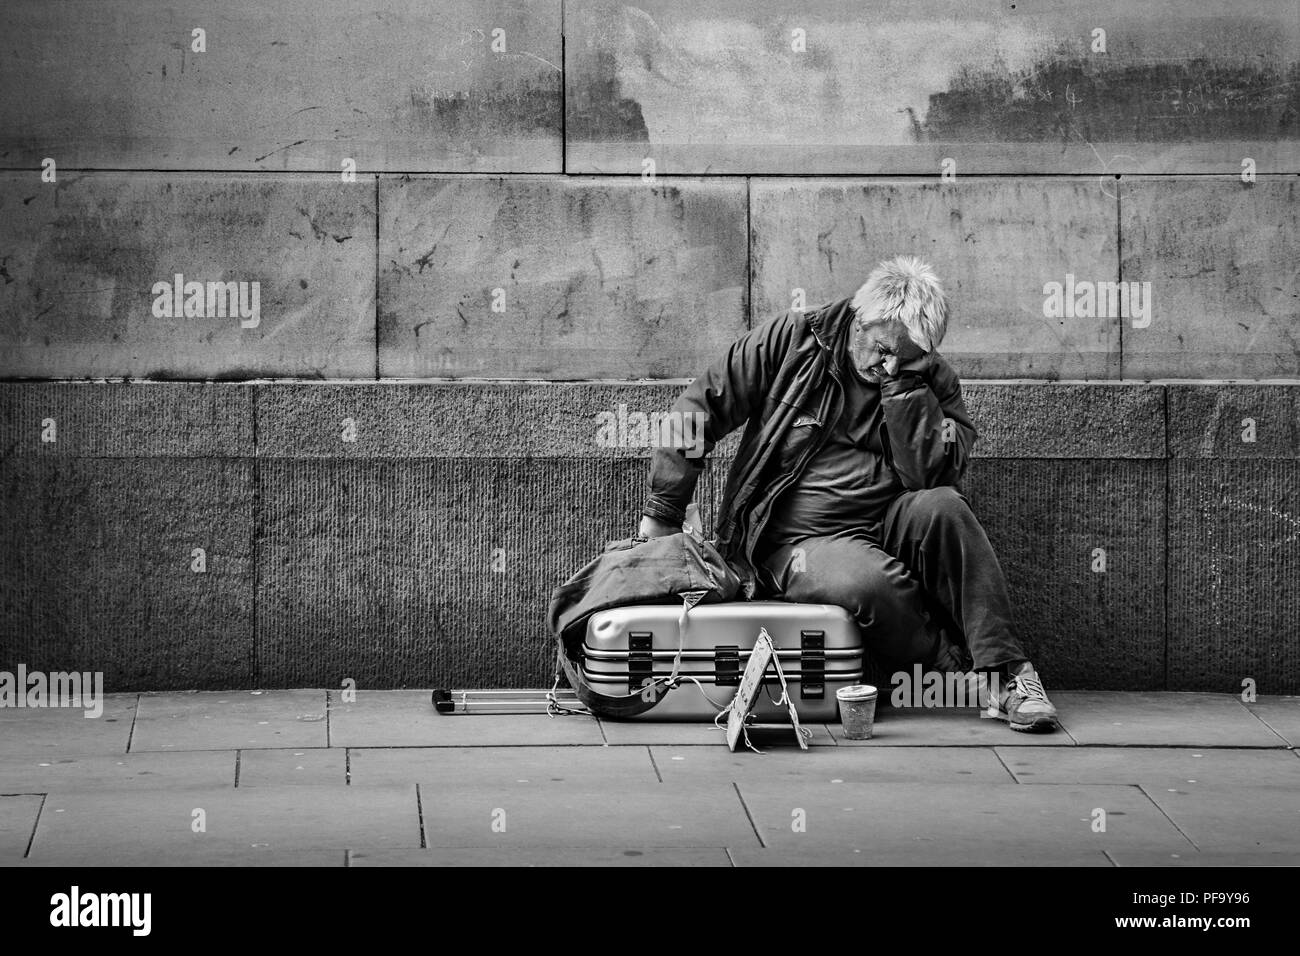 Homeless man black and white stock photos images alamy